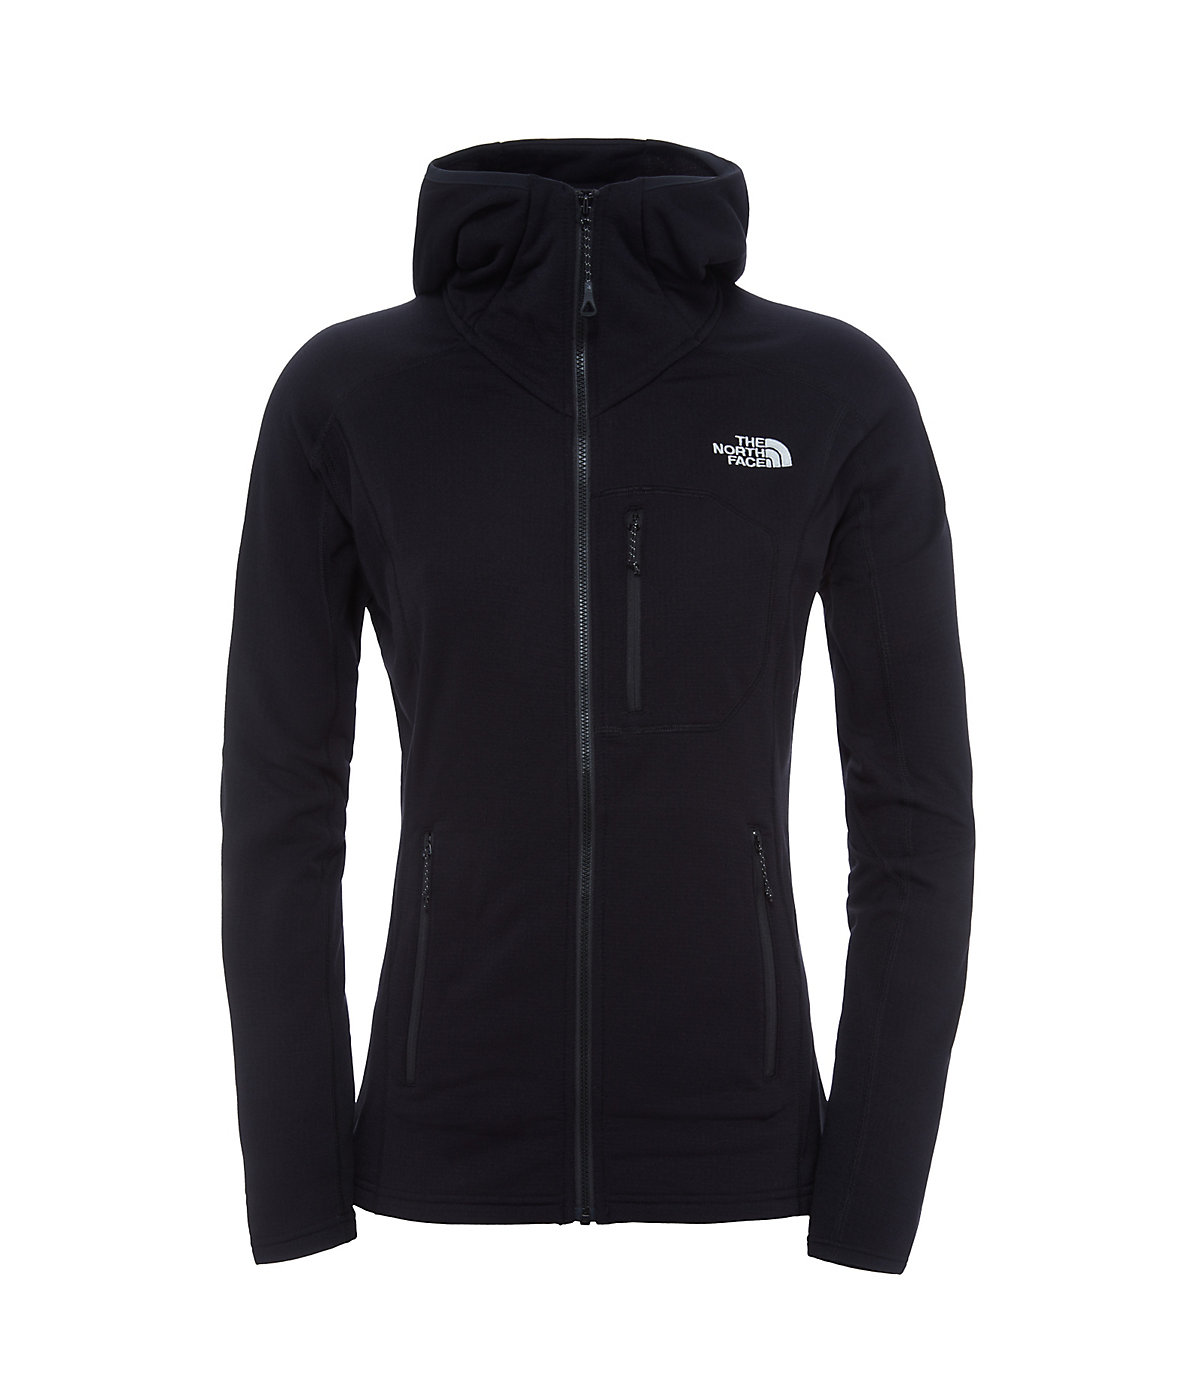 The North Face Women's Incipent Hooded Jacket | Jackets